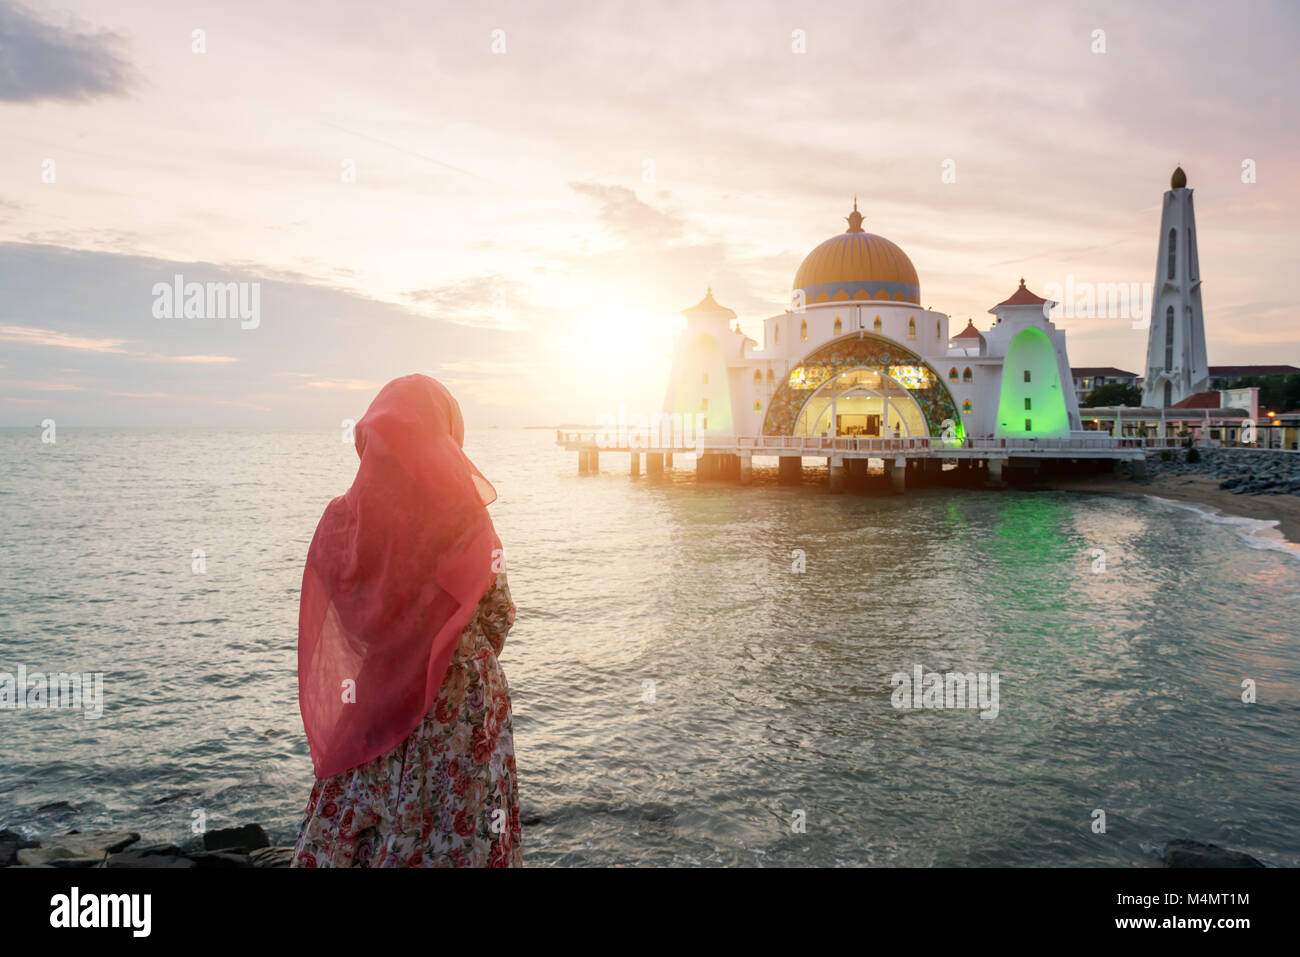 Malacca Straits Mosque with Muslim pray in Malaysia. Malaysian muslim with mosque religion concept. - Stock Image